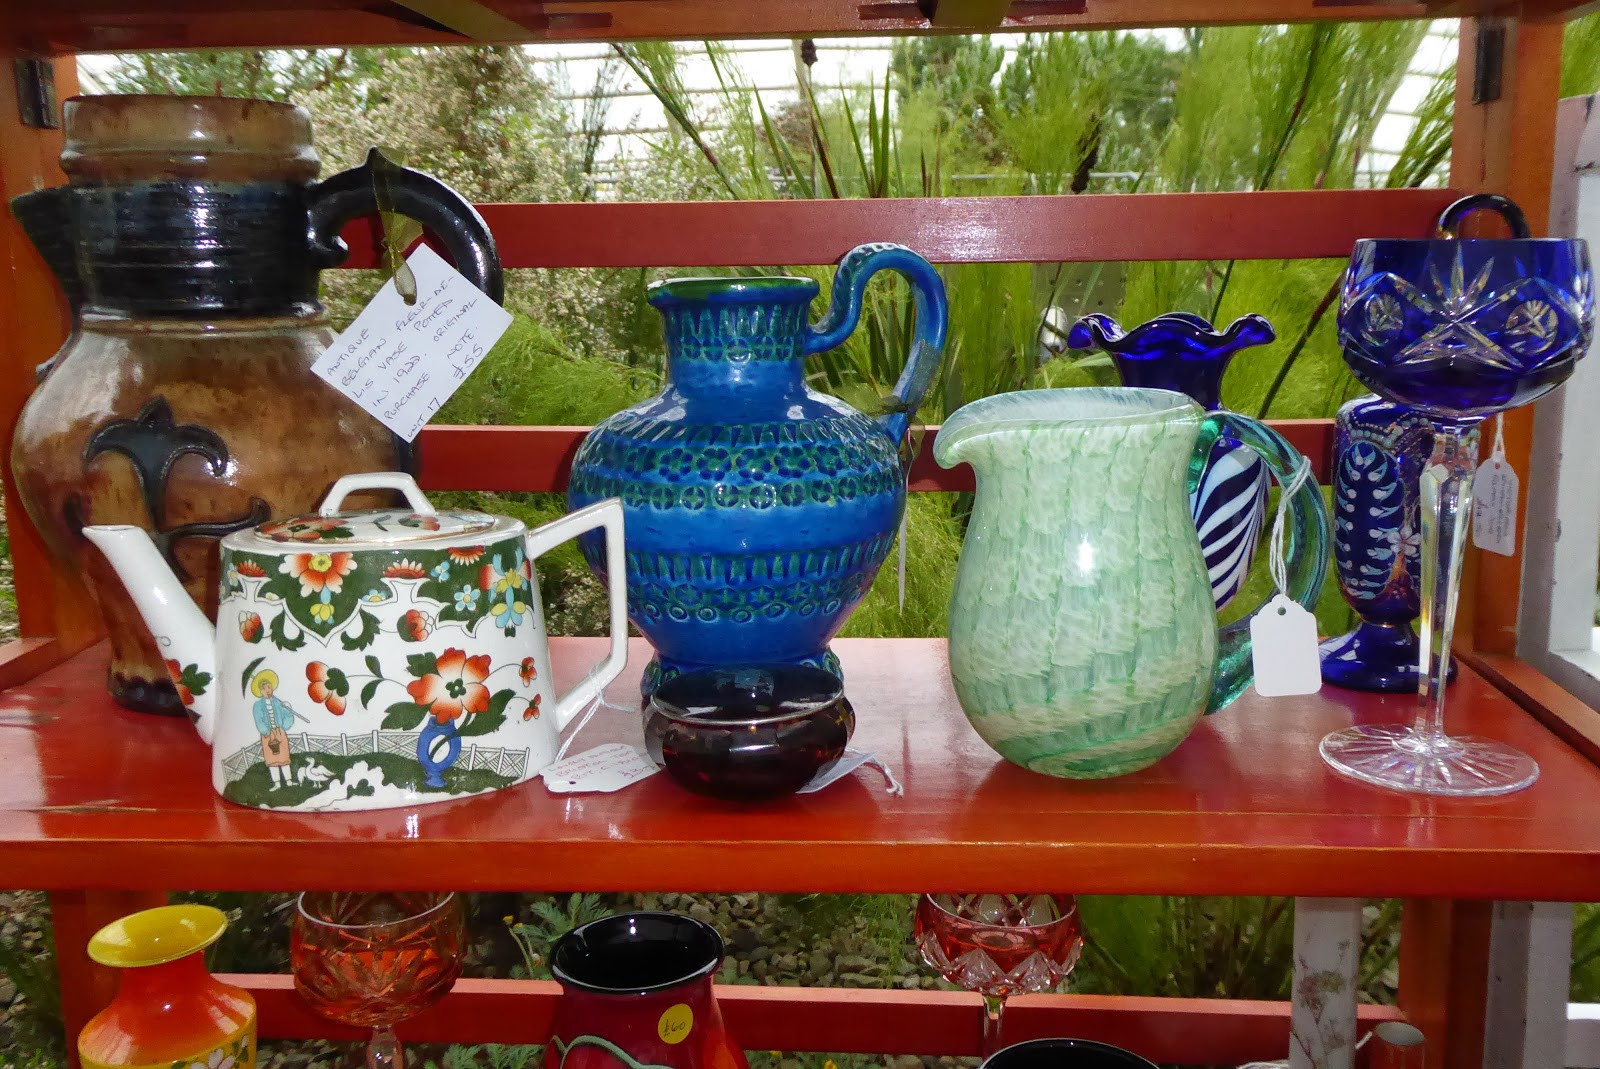 large japanese vase of codlinsandcream2 phew that was a tiring weekend throughout a big hefty fleur de lis jug from belgium includes sale docket dated 1922 bittori jug really heavy green glass jug some bavarian blue glass